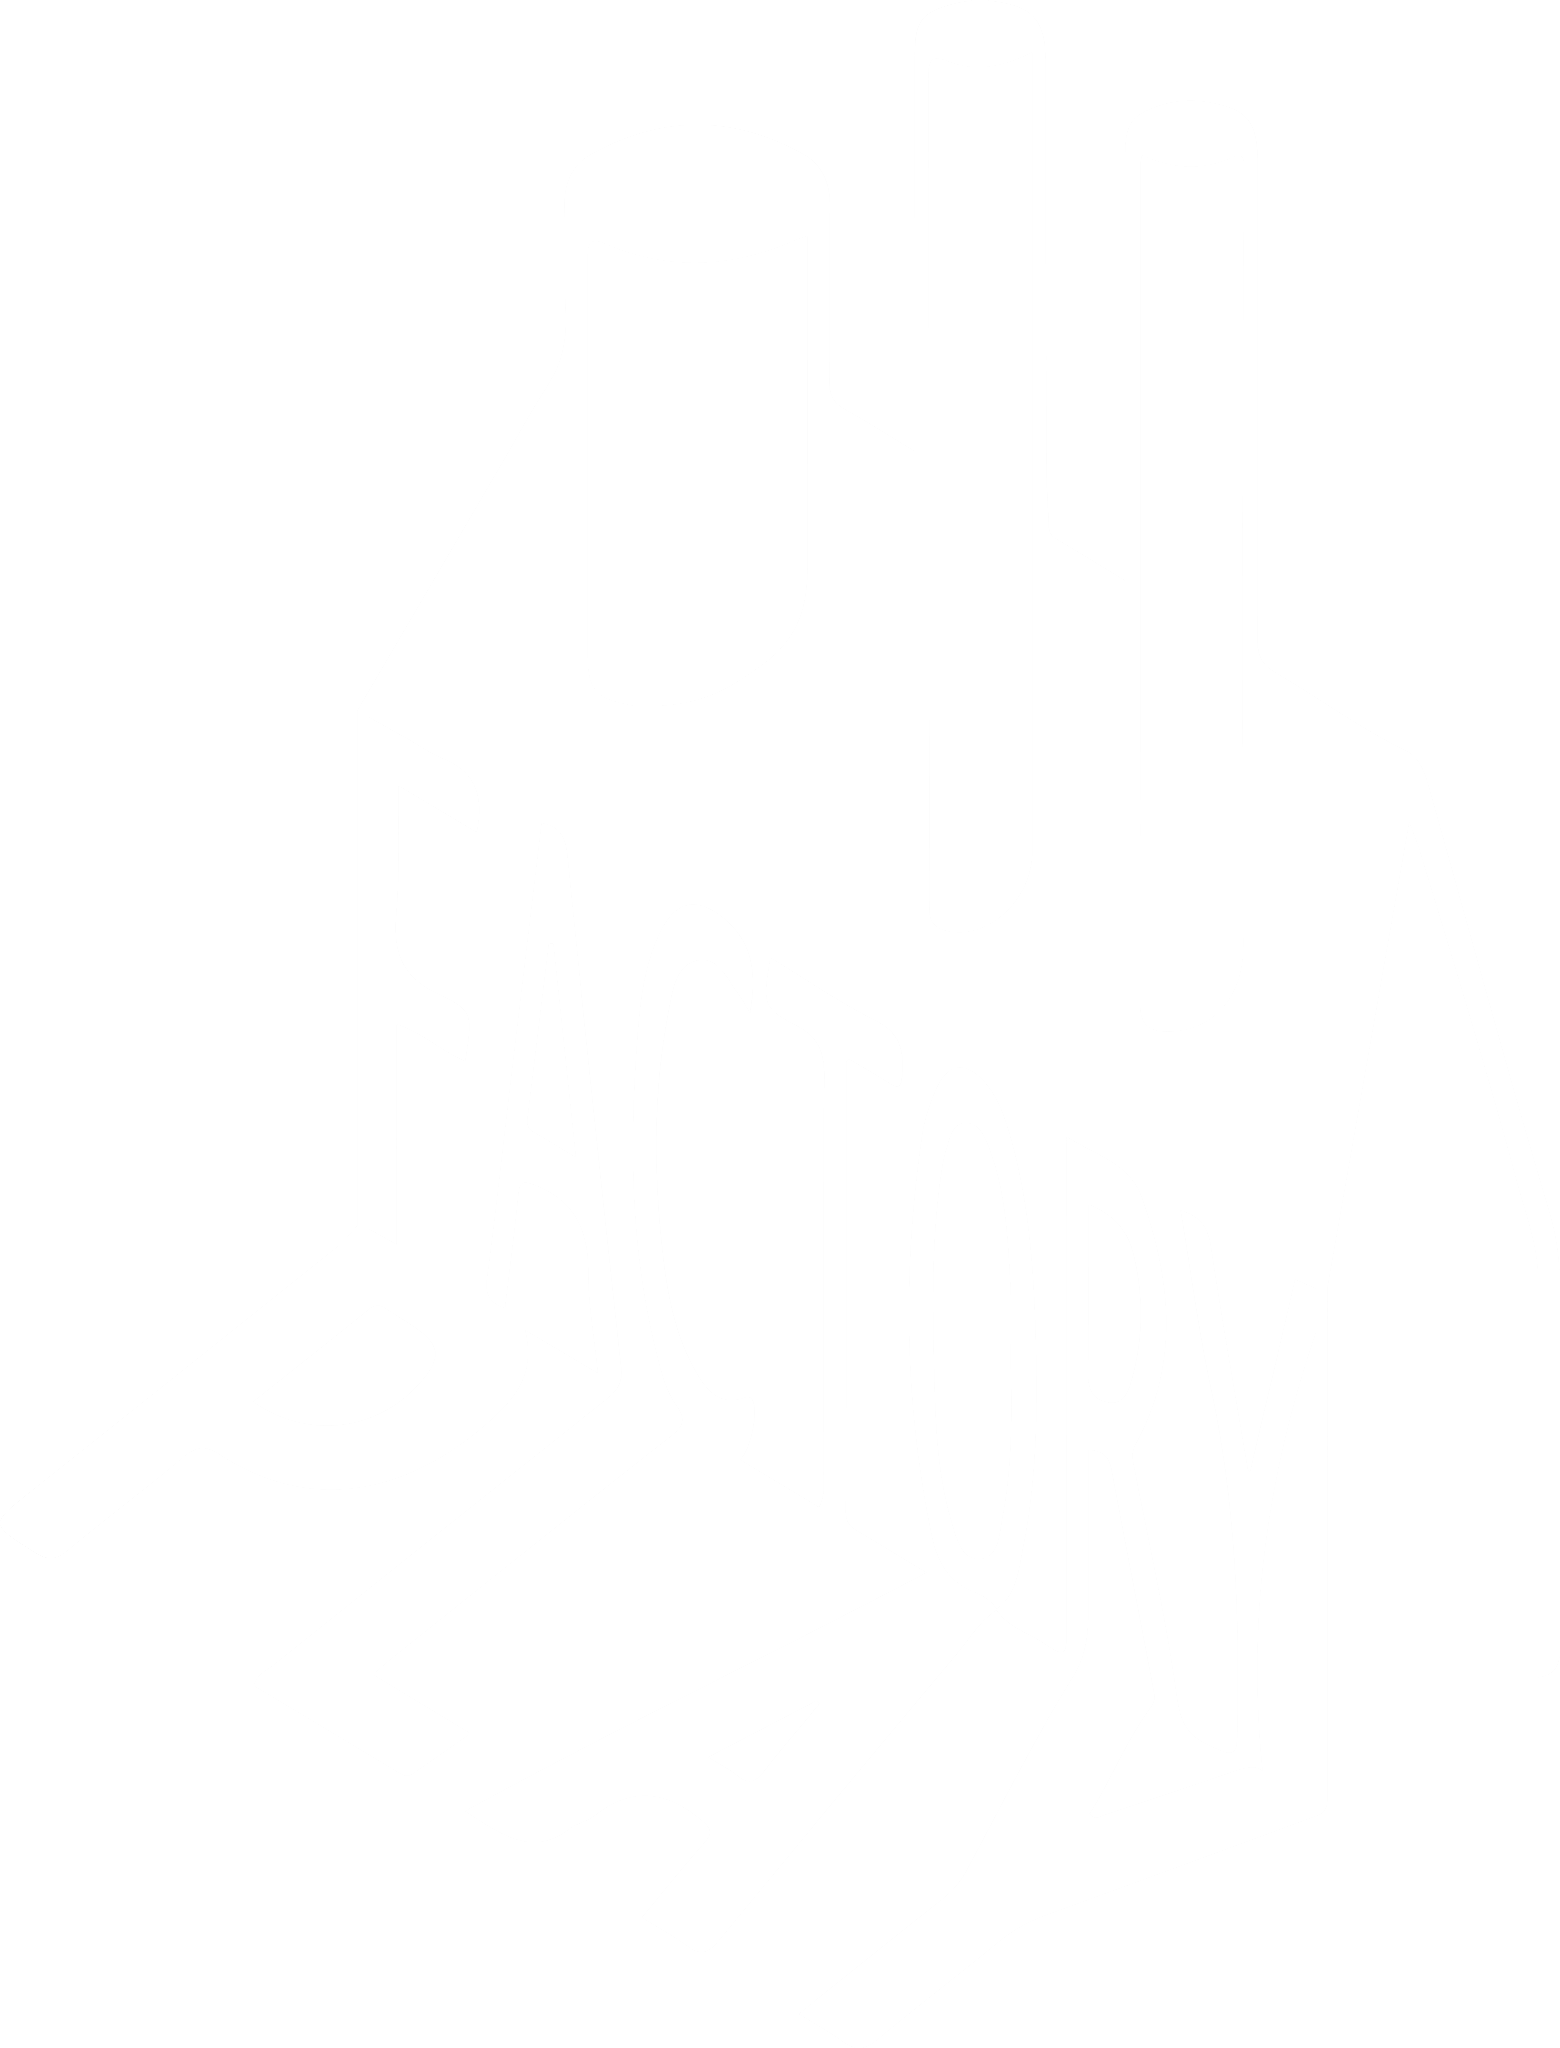 factoryplay.in.ua